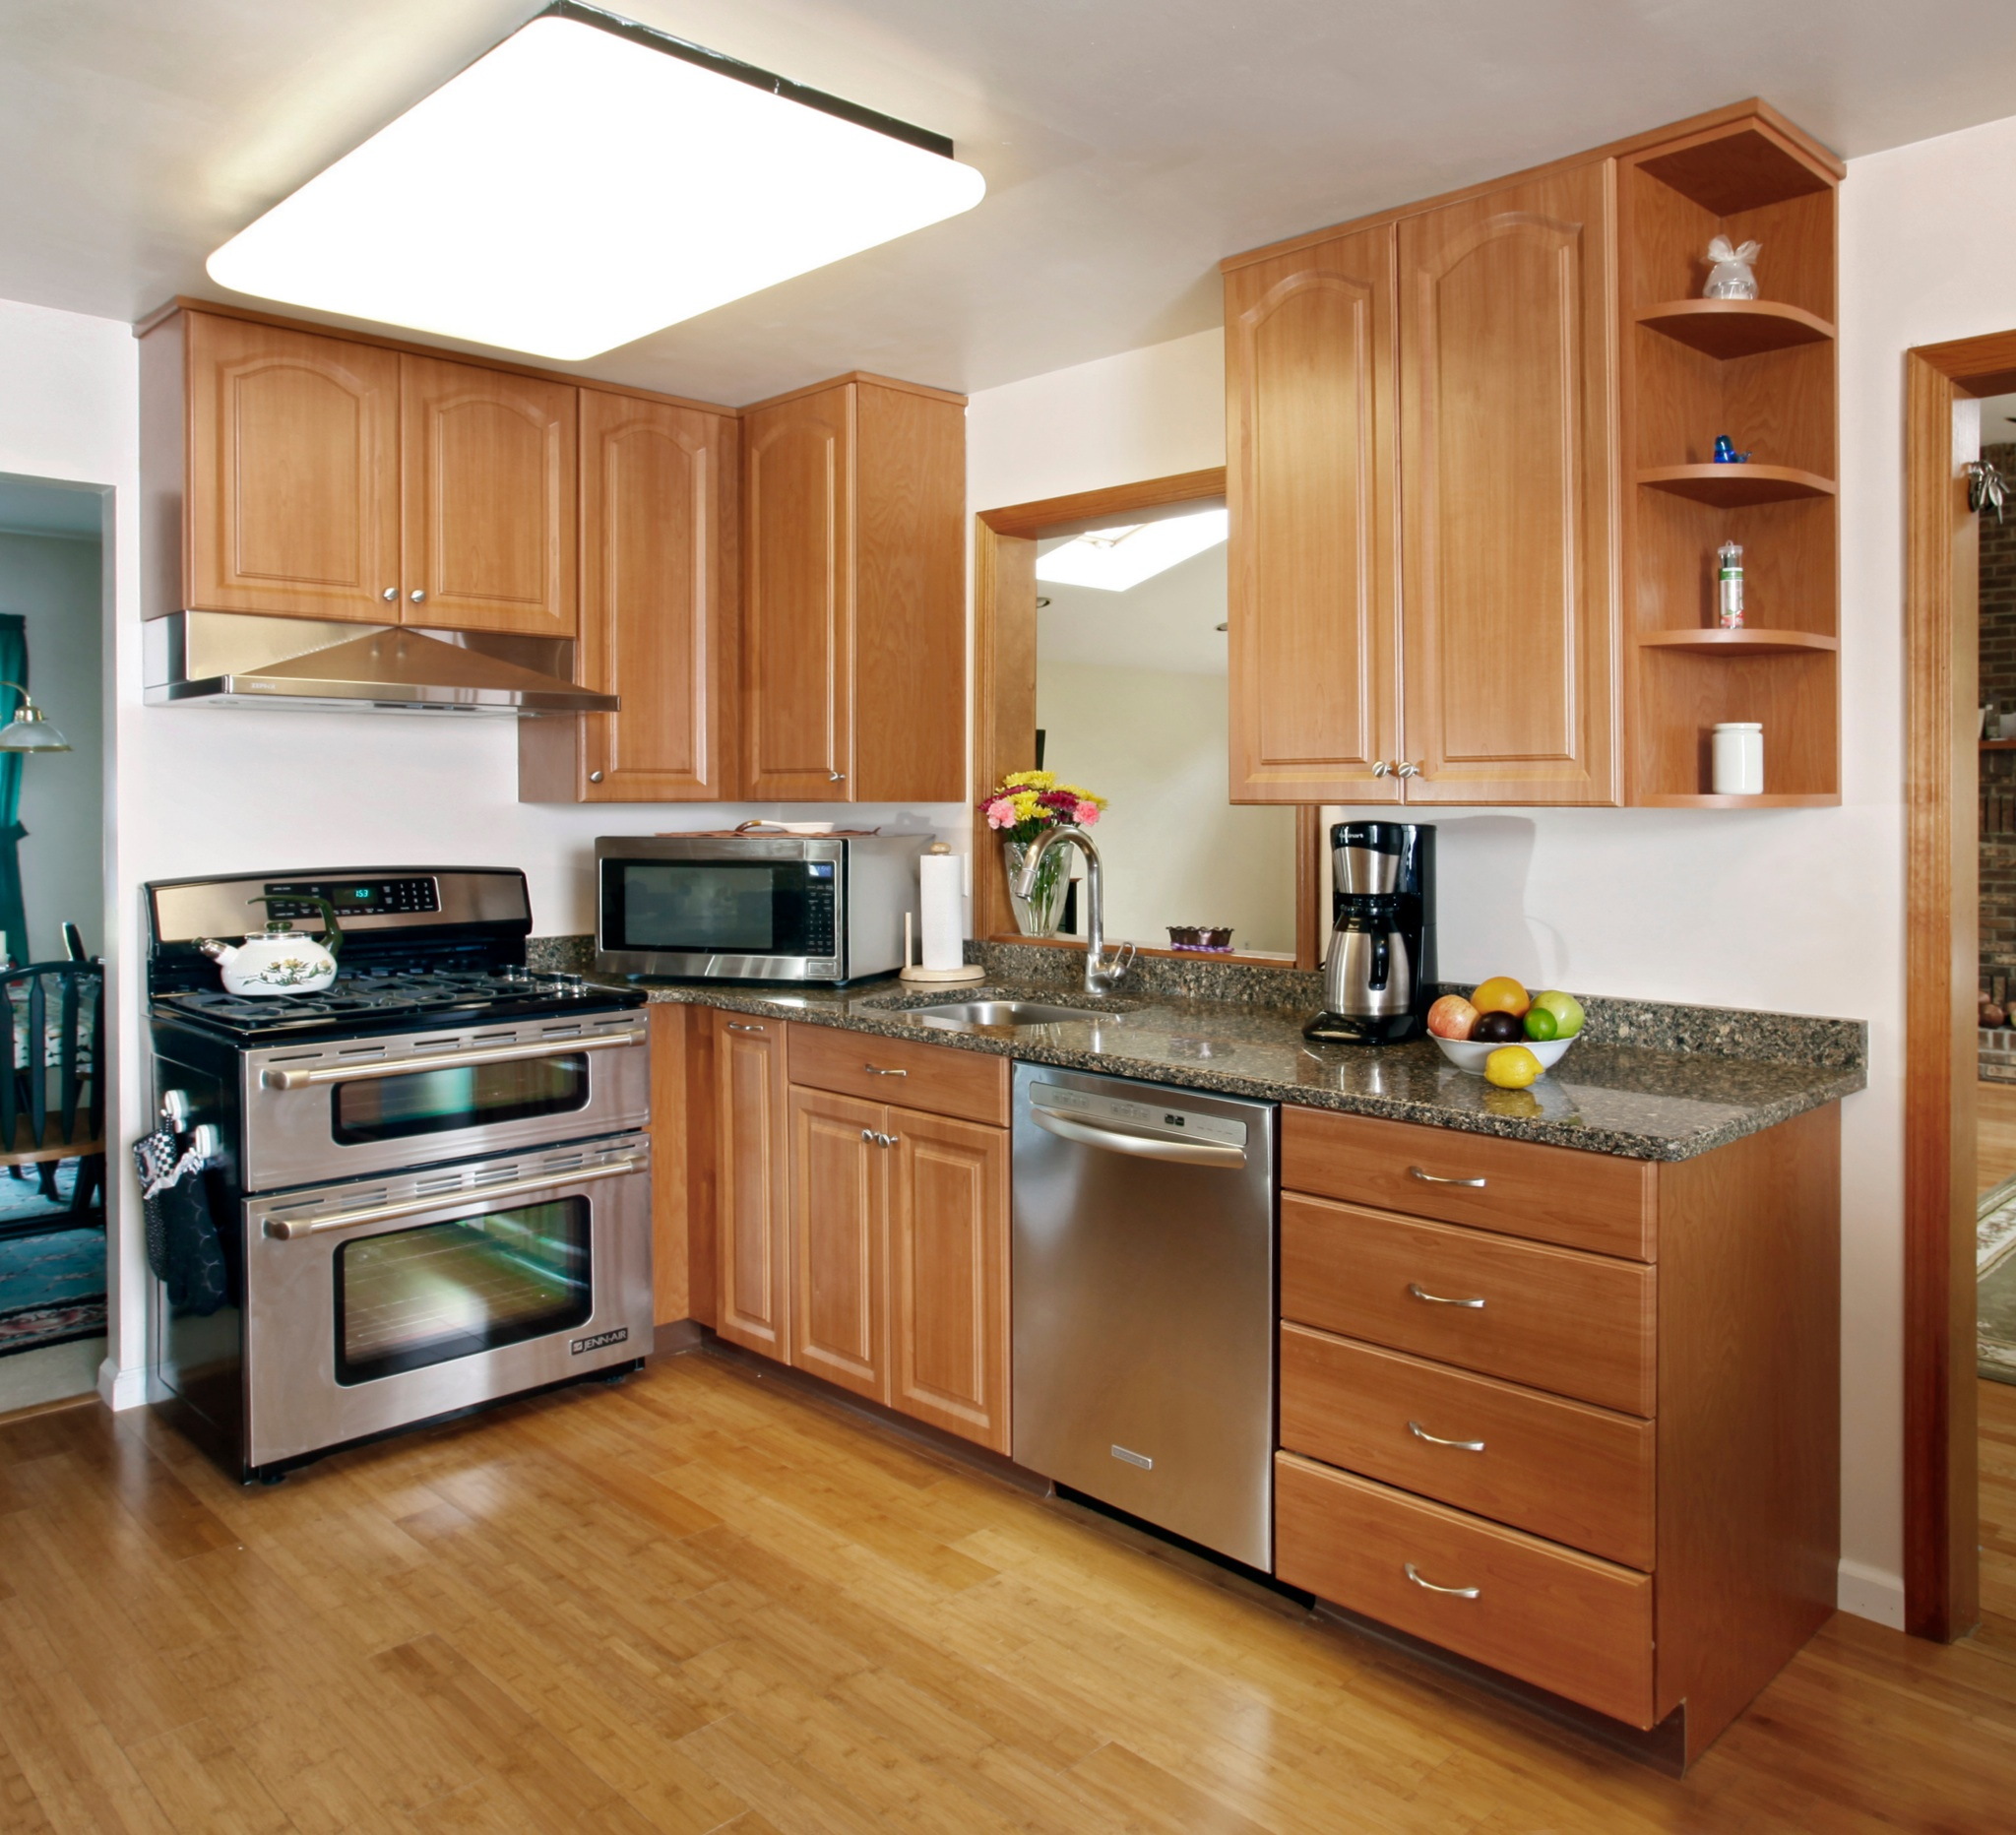 Cherry Oak Kitchen Cabinets: What Countertop Color Looks Best With Cherry Pear Cabinets?